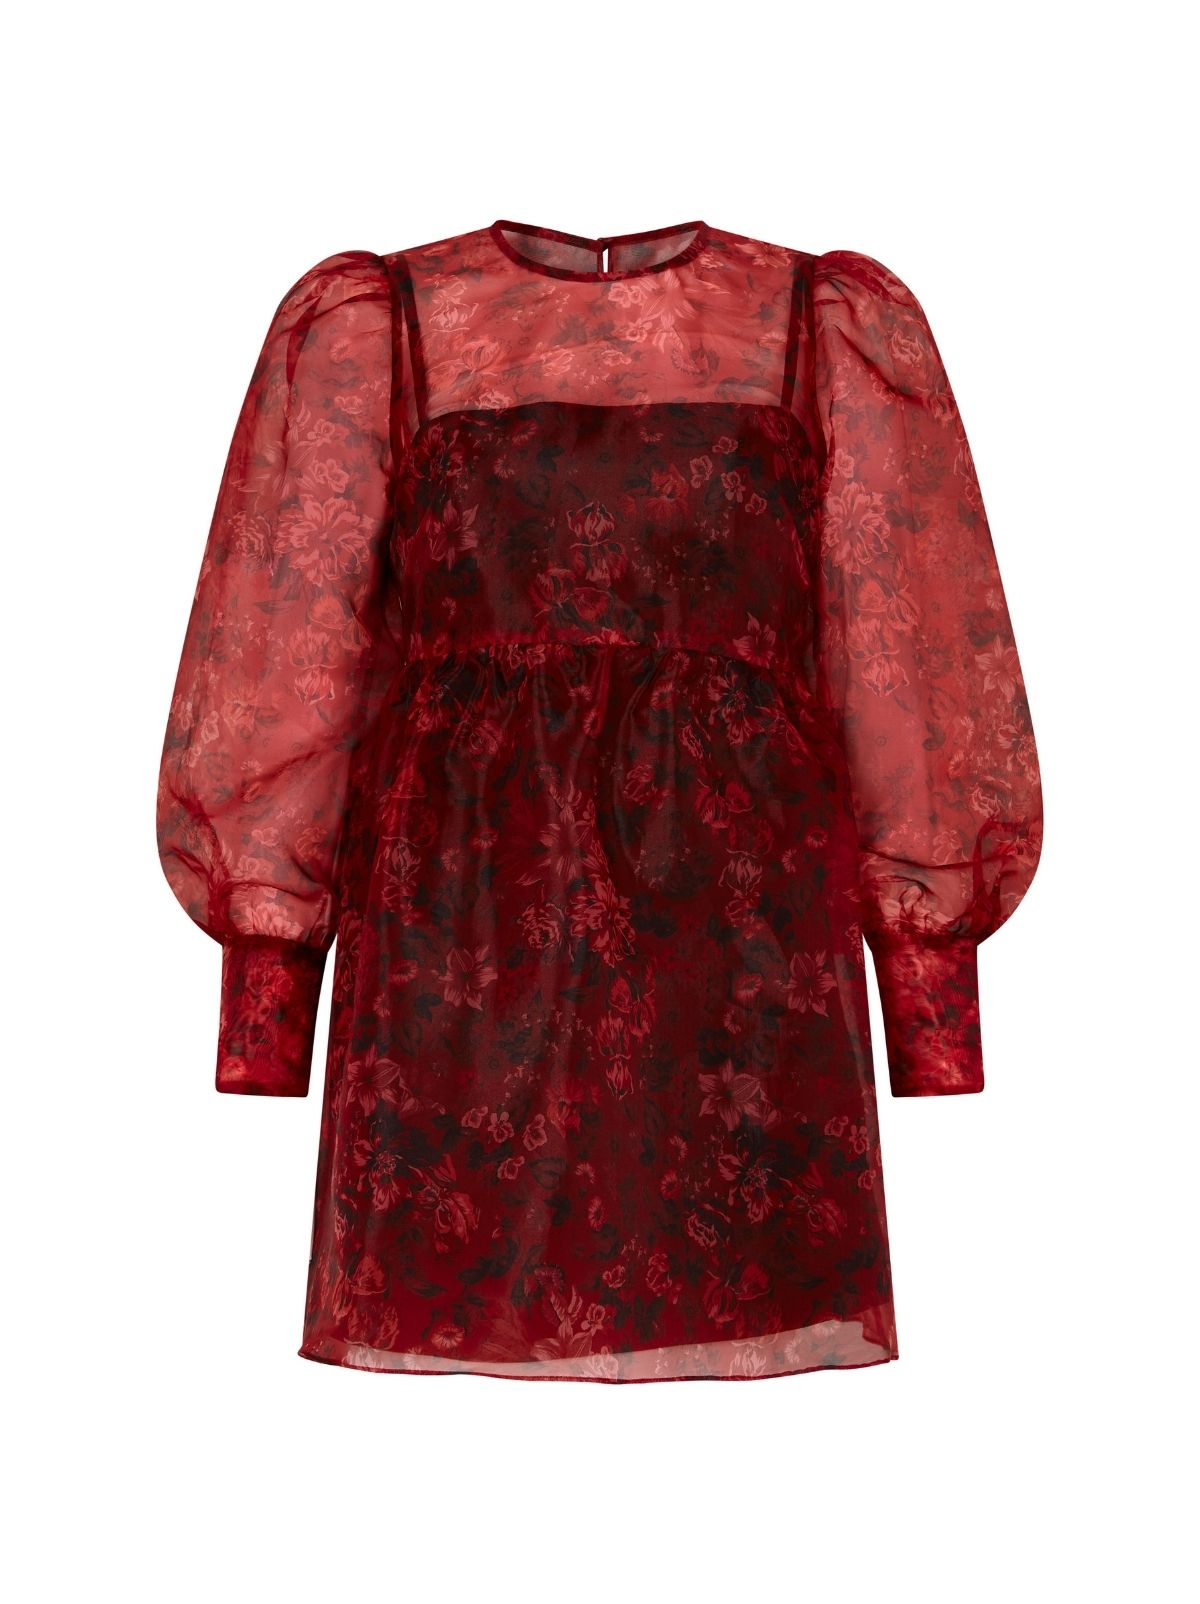 Alice Floral Mini Smock Dress by KITRI Studio